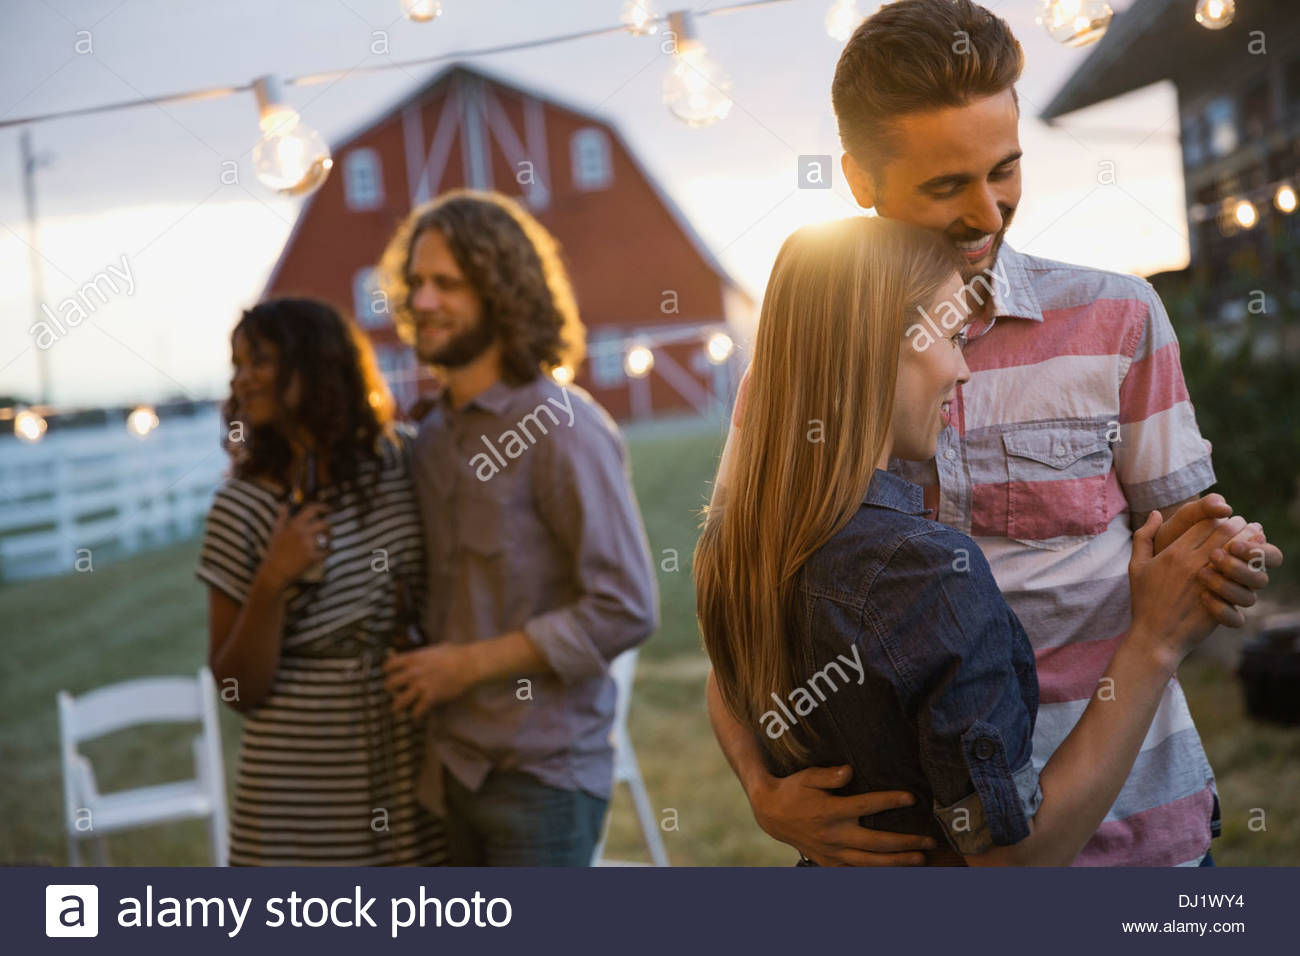 Young couples dancing on outdoor field at dusk - Stock Image